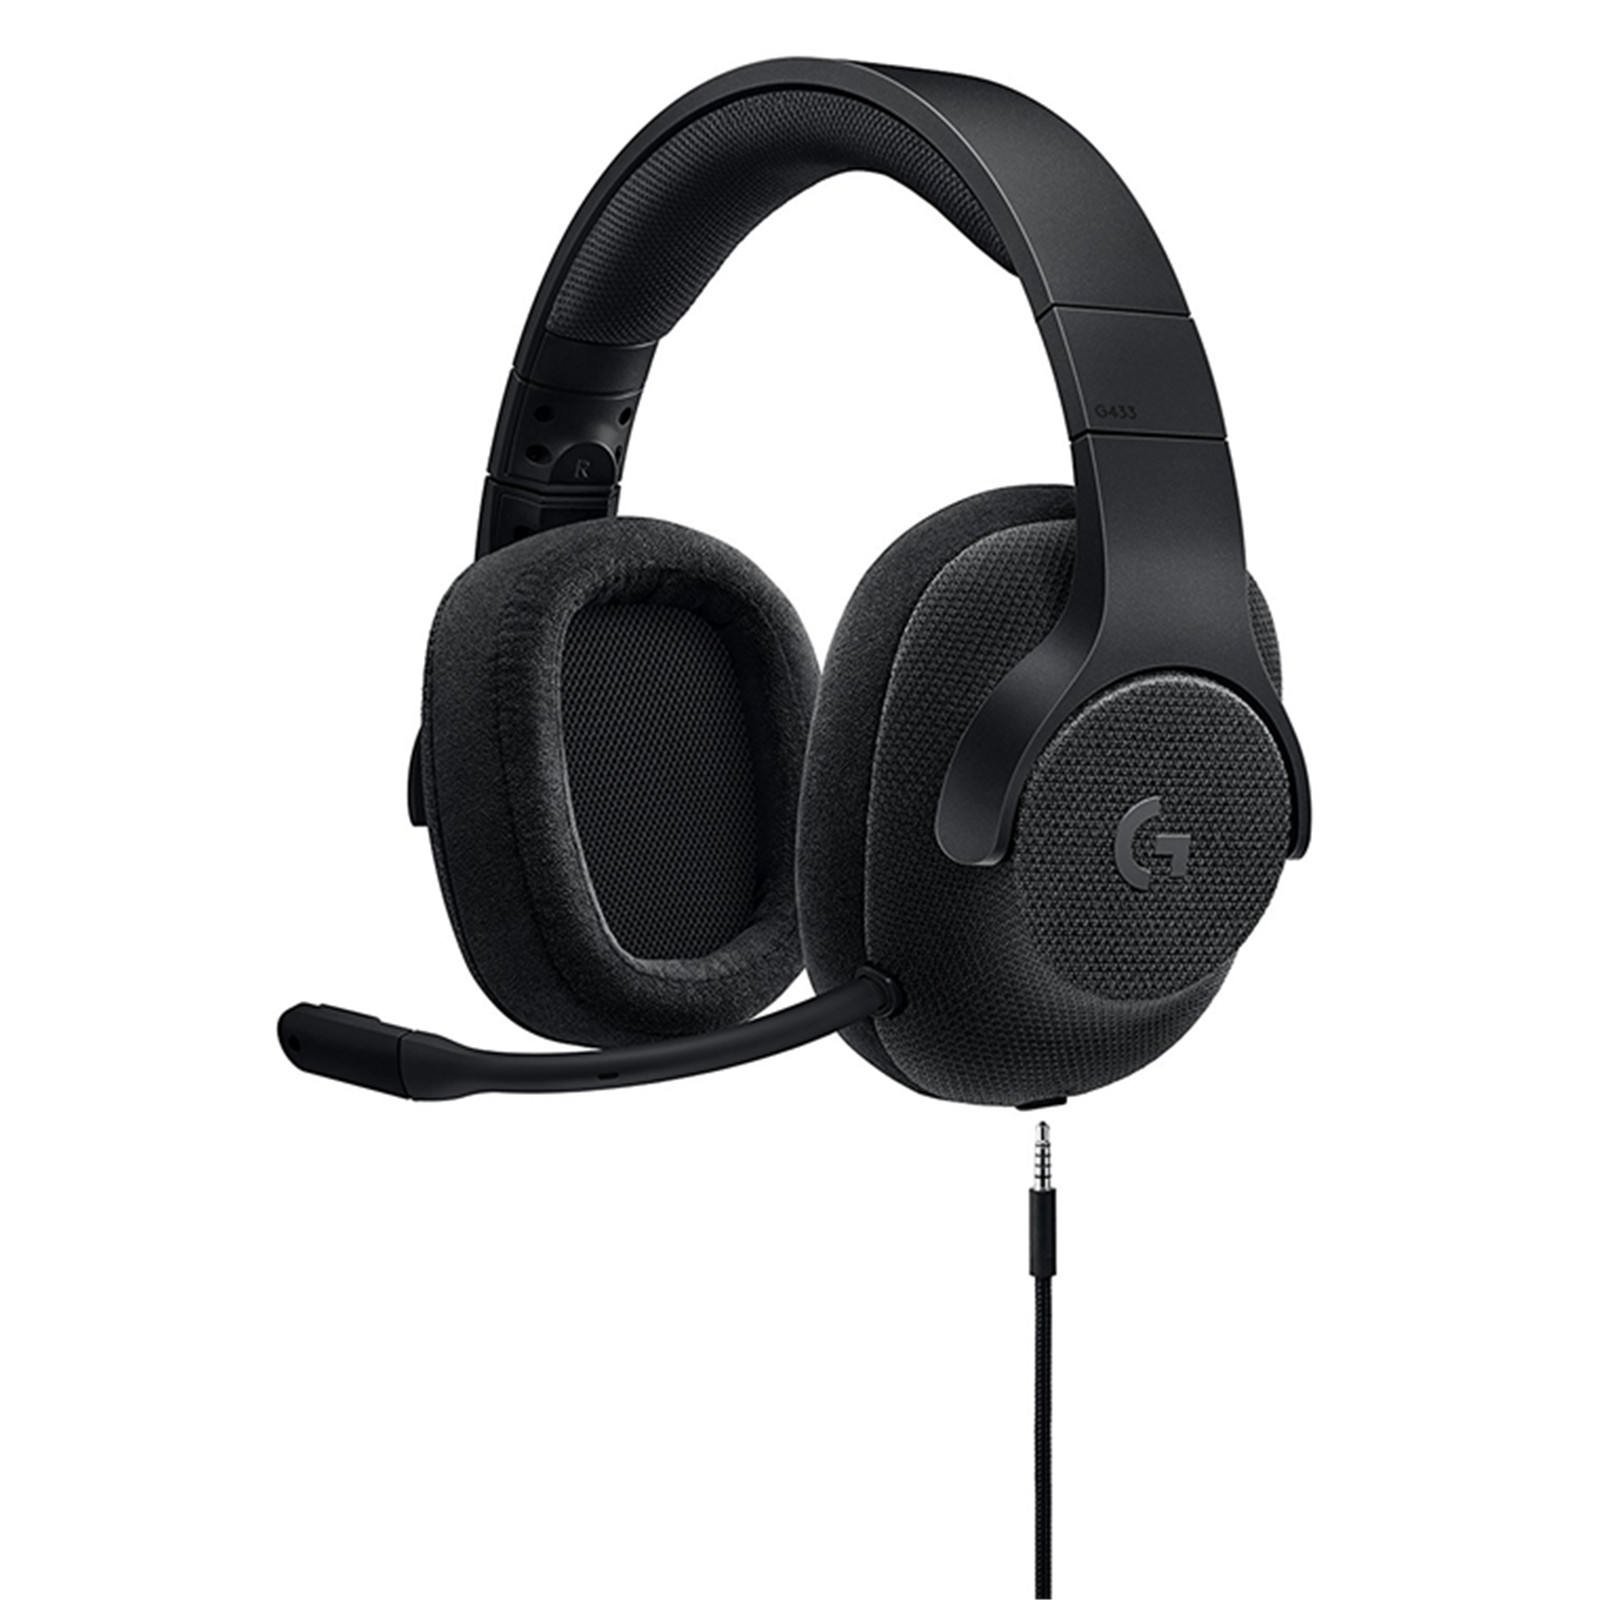 Buy the Logitech G433 7 1 Surround Sound USB Gaming Headset